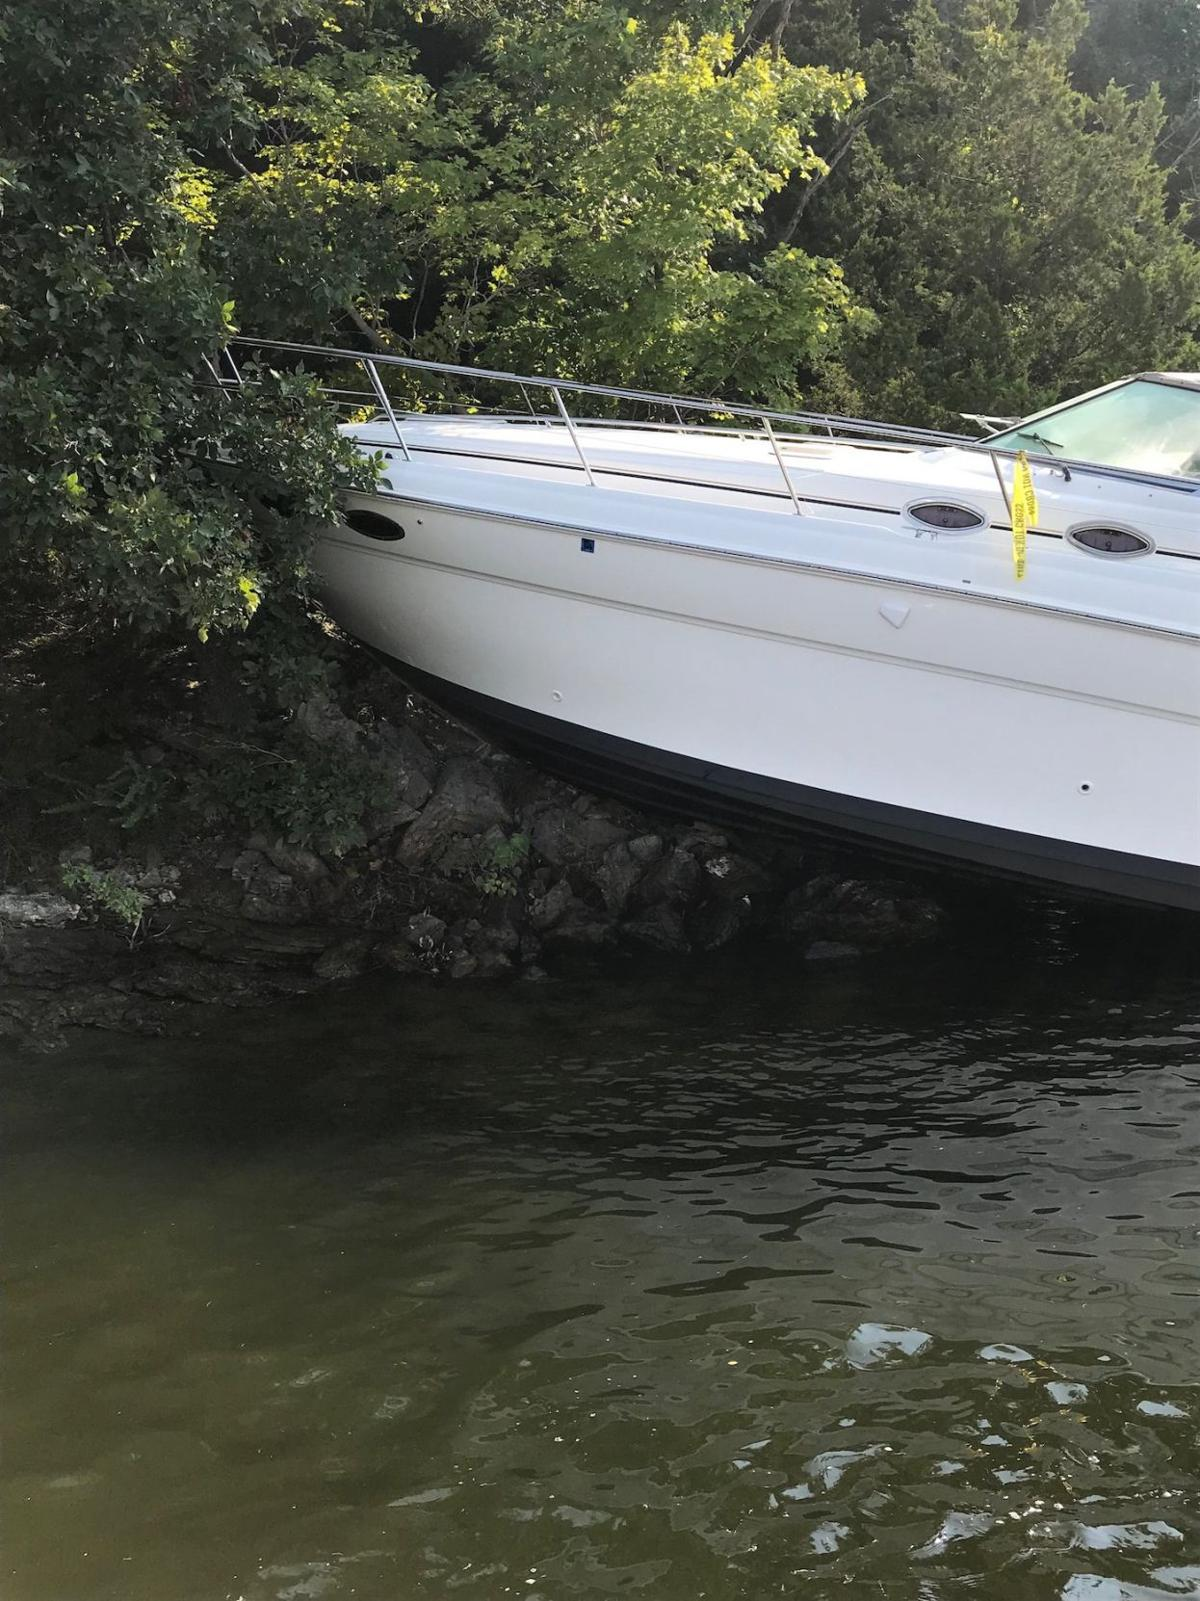 Boat Grounded On Lake Of The Ozarks Niangua Arm